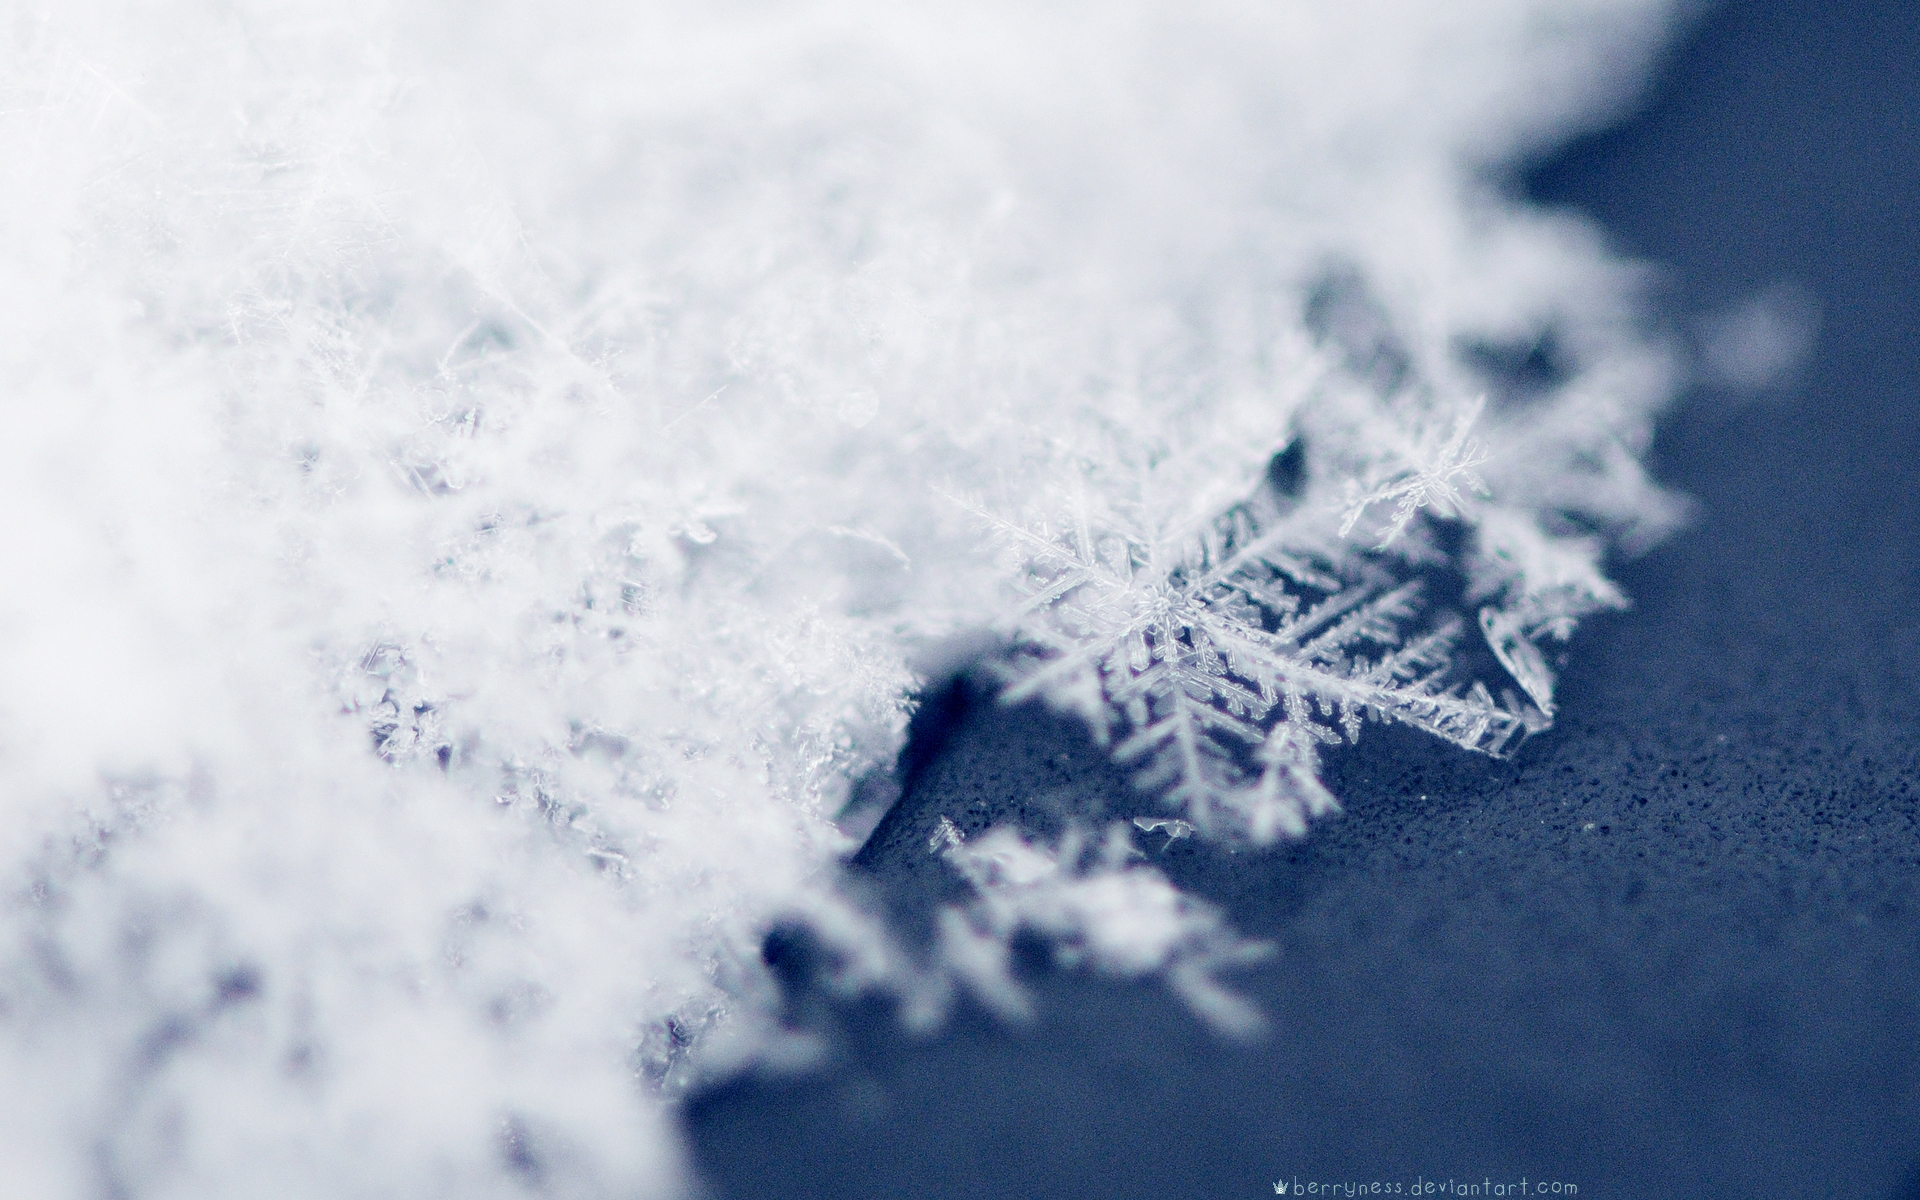 Winter Snow Live Wallpaper PRO Android Apps On Google Play 1920x1200